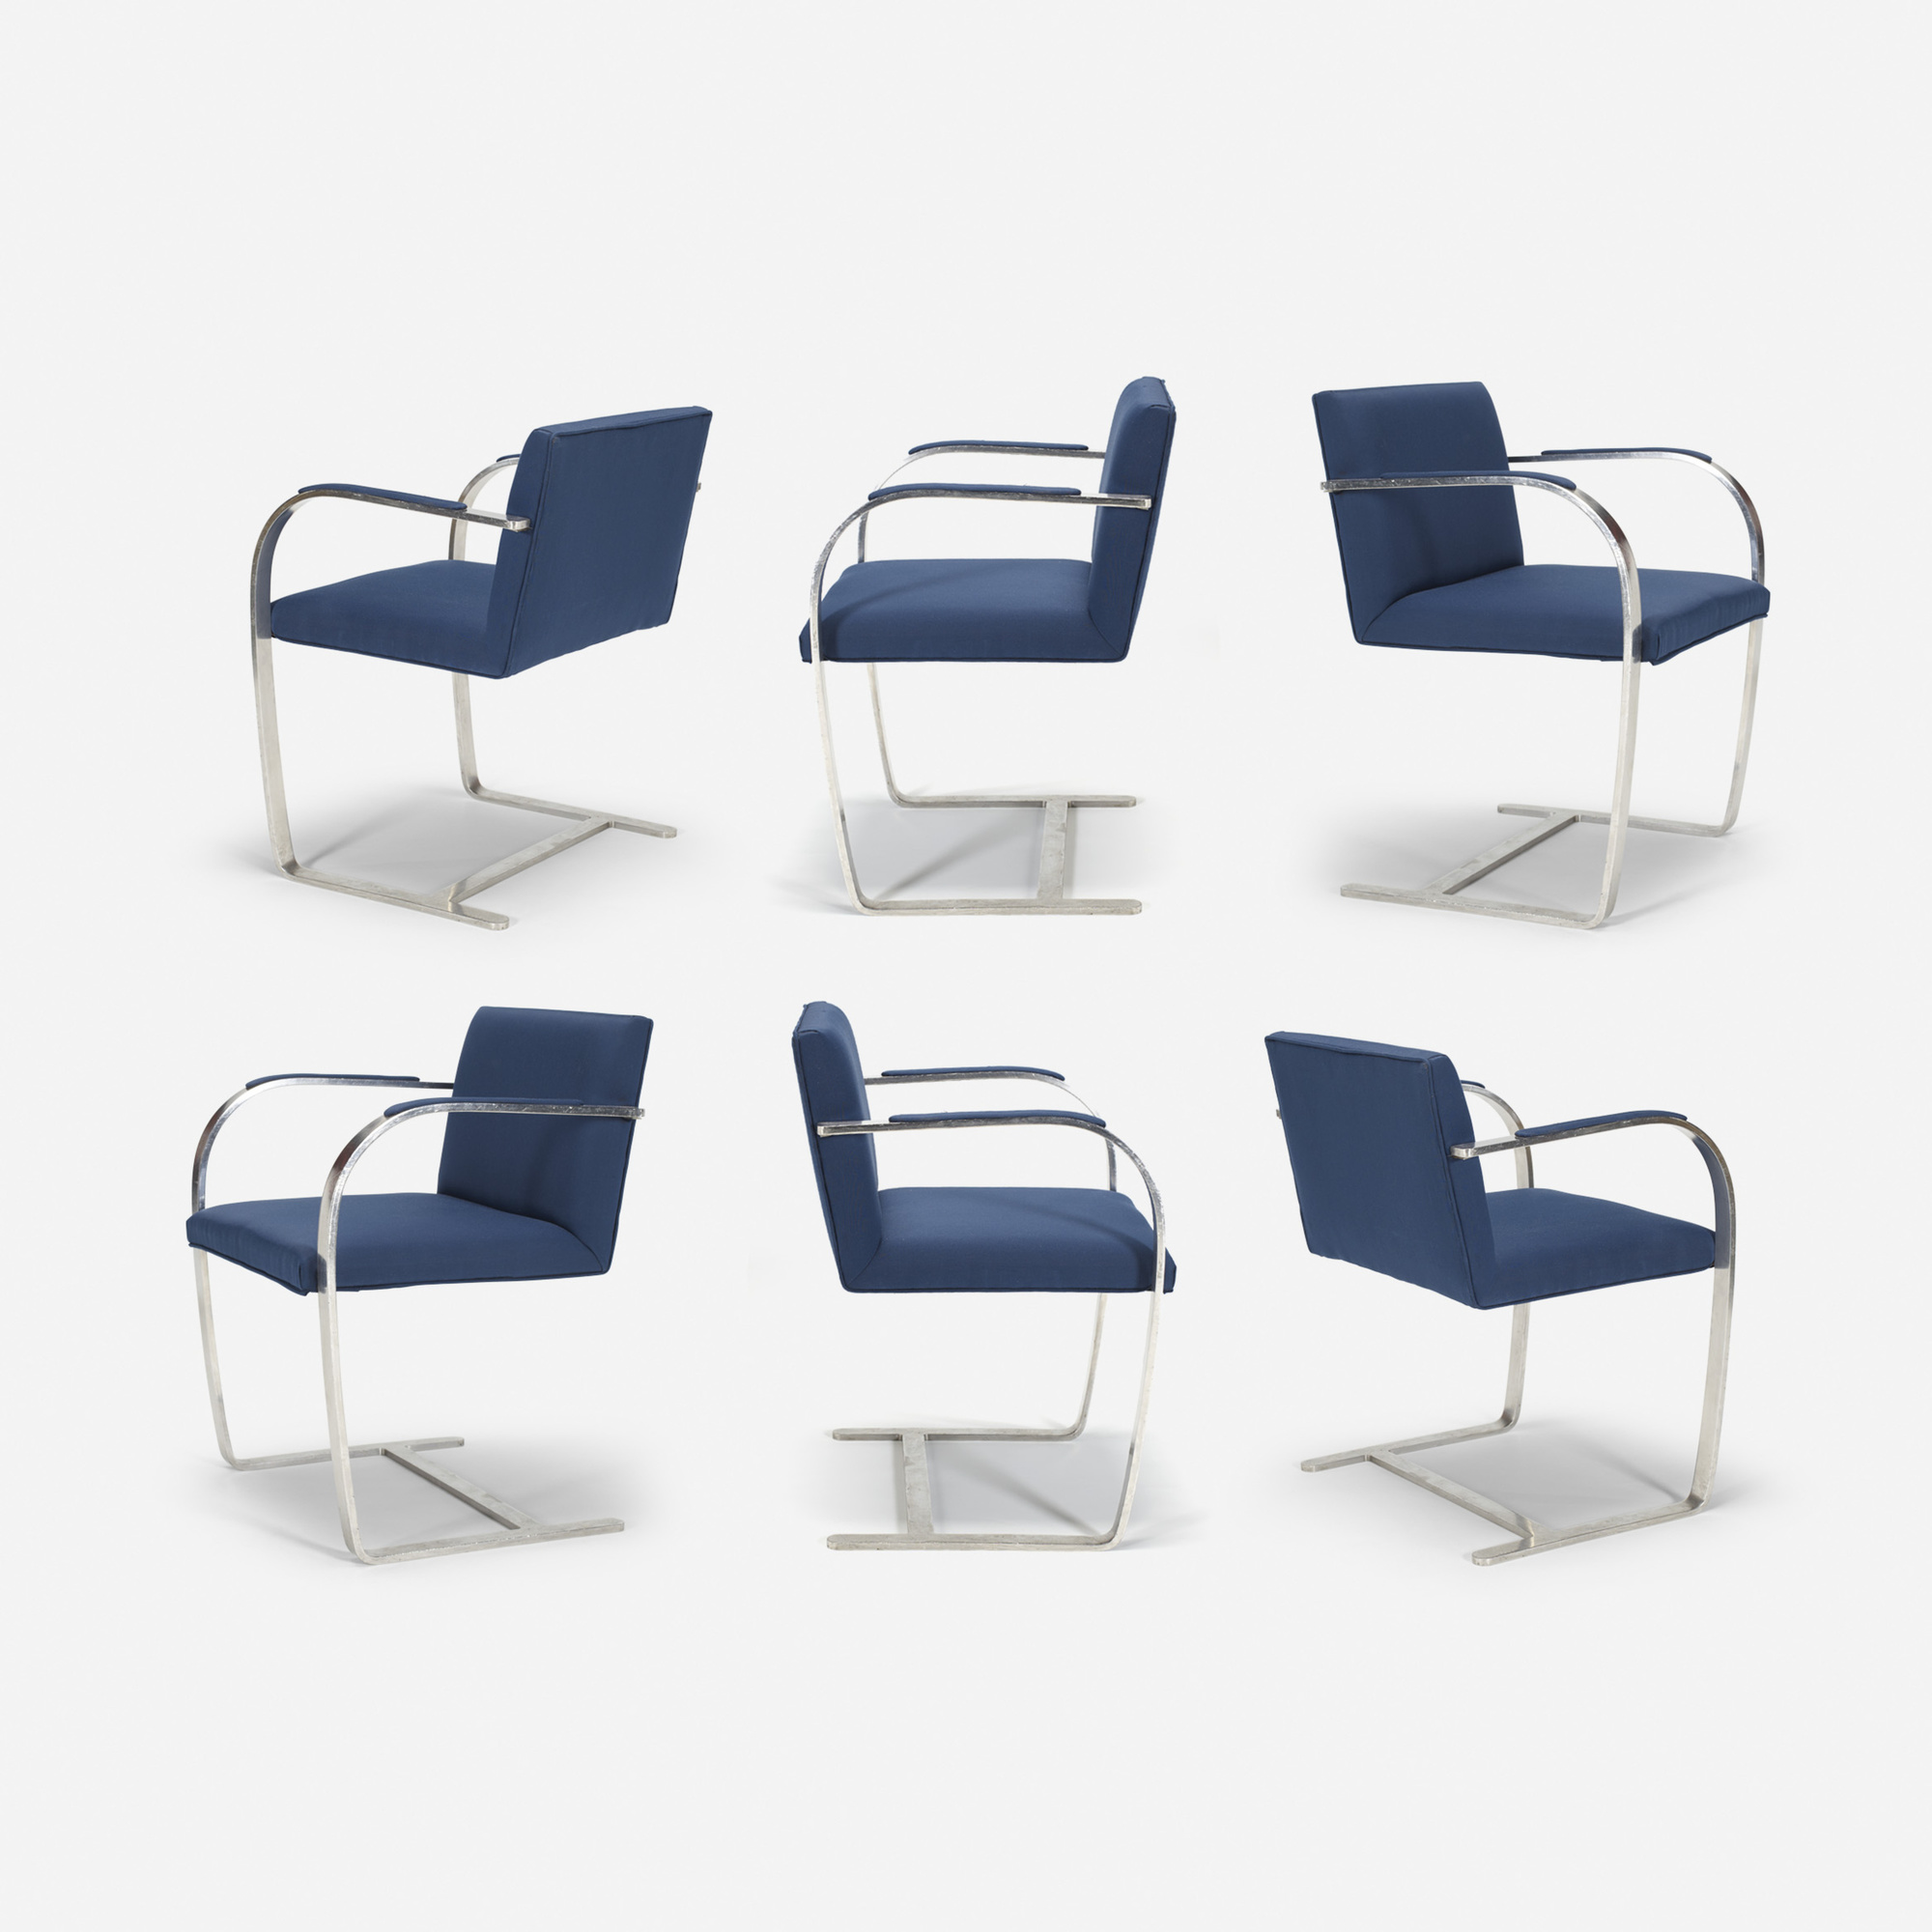 205: Ludwig Mies van der Rohe / Brno chairs from The Four Seasons, set of six (1 of 1)